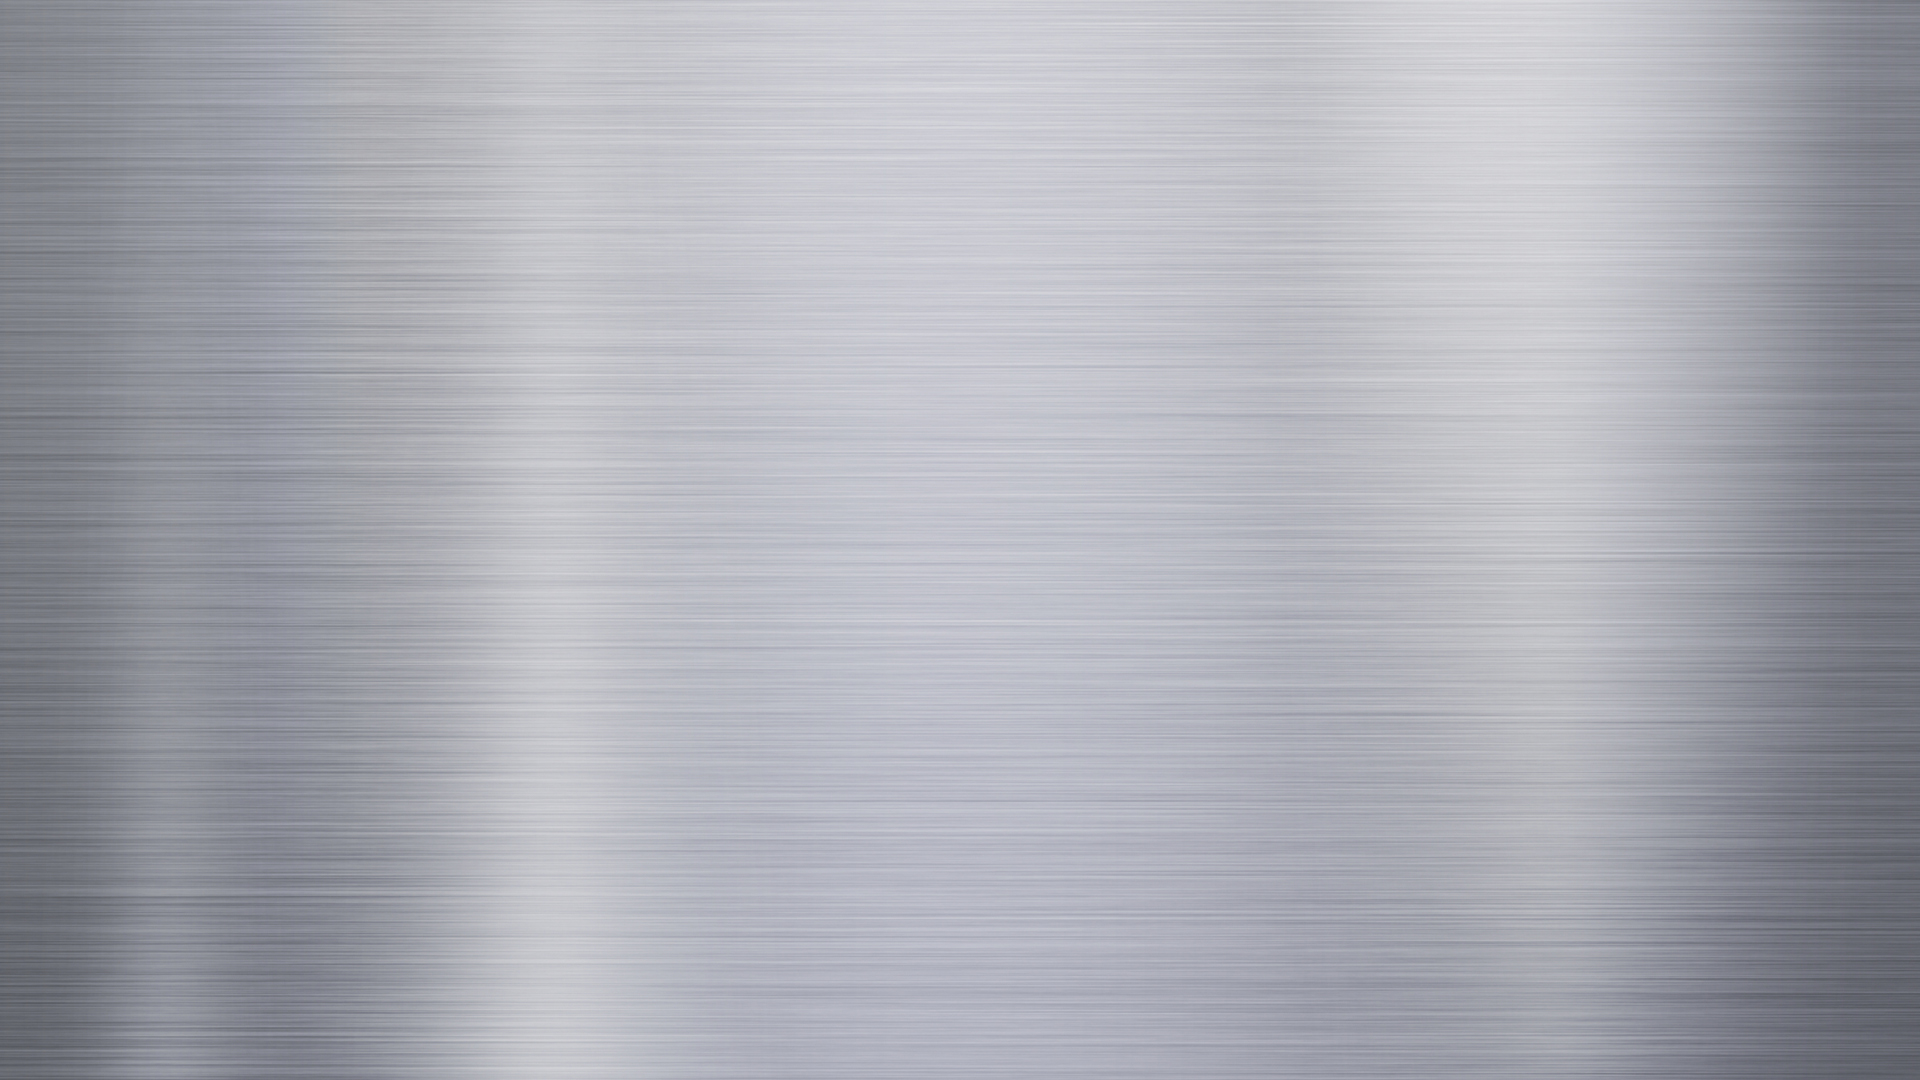 free photo brushed metal space texture silver free download